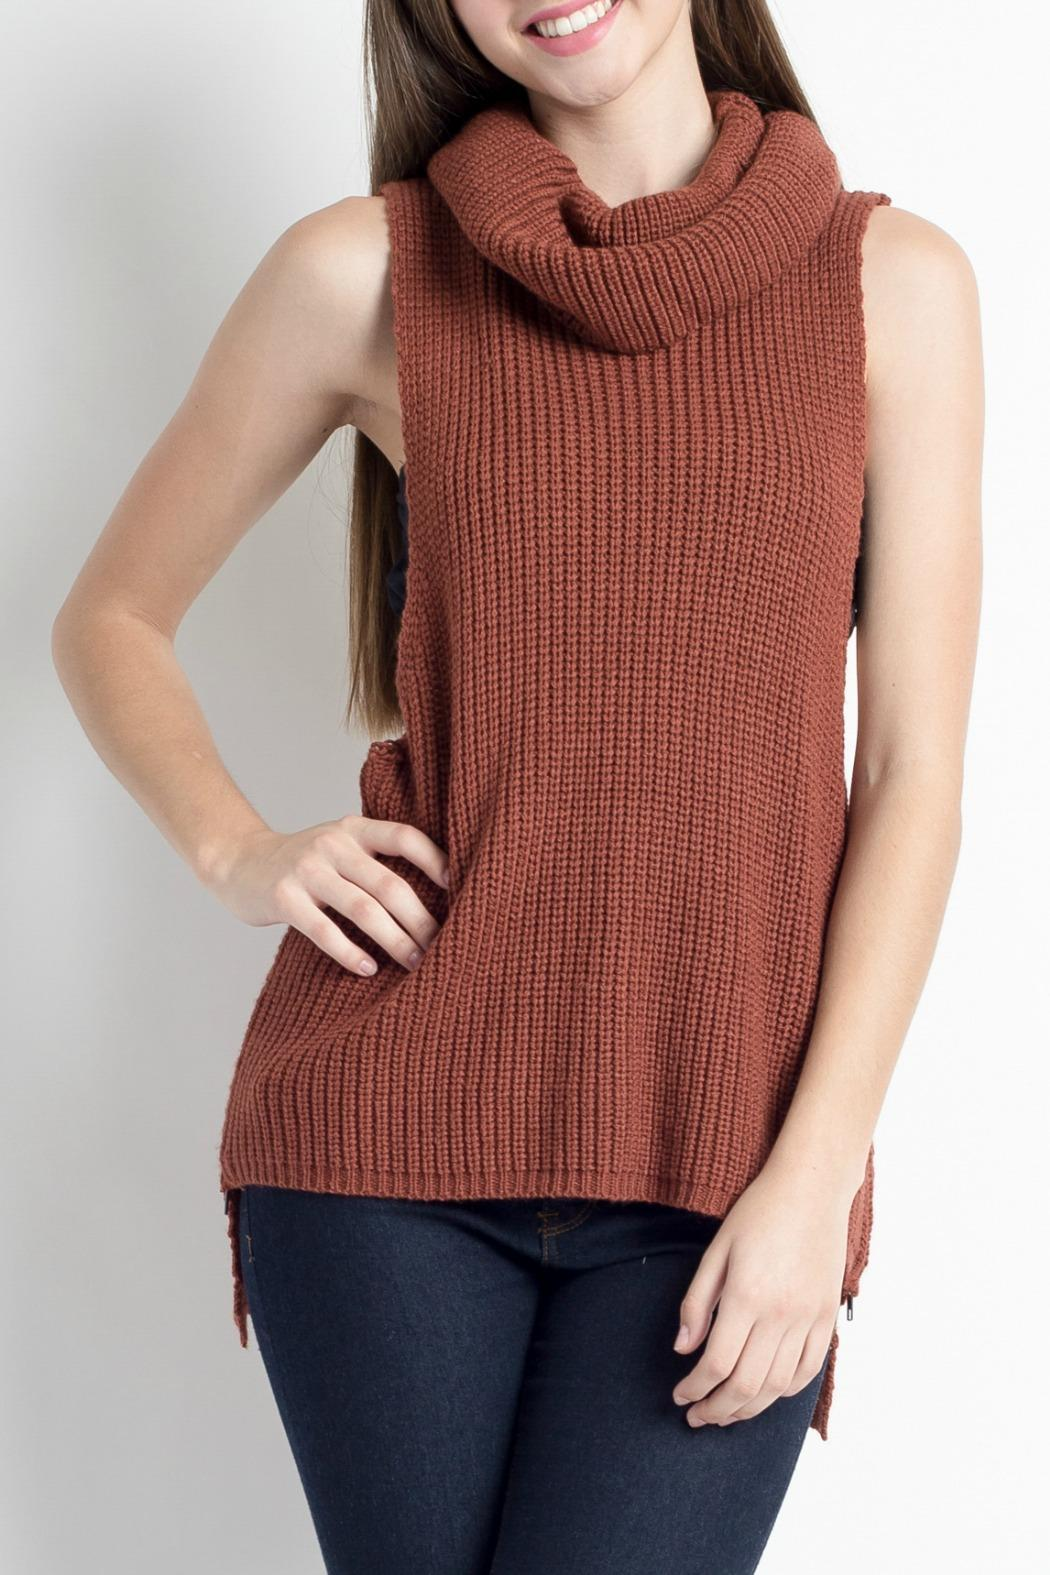 HYFVE Sleeveless Cowlneck Sweater from New Jersey by Making Waves ...